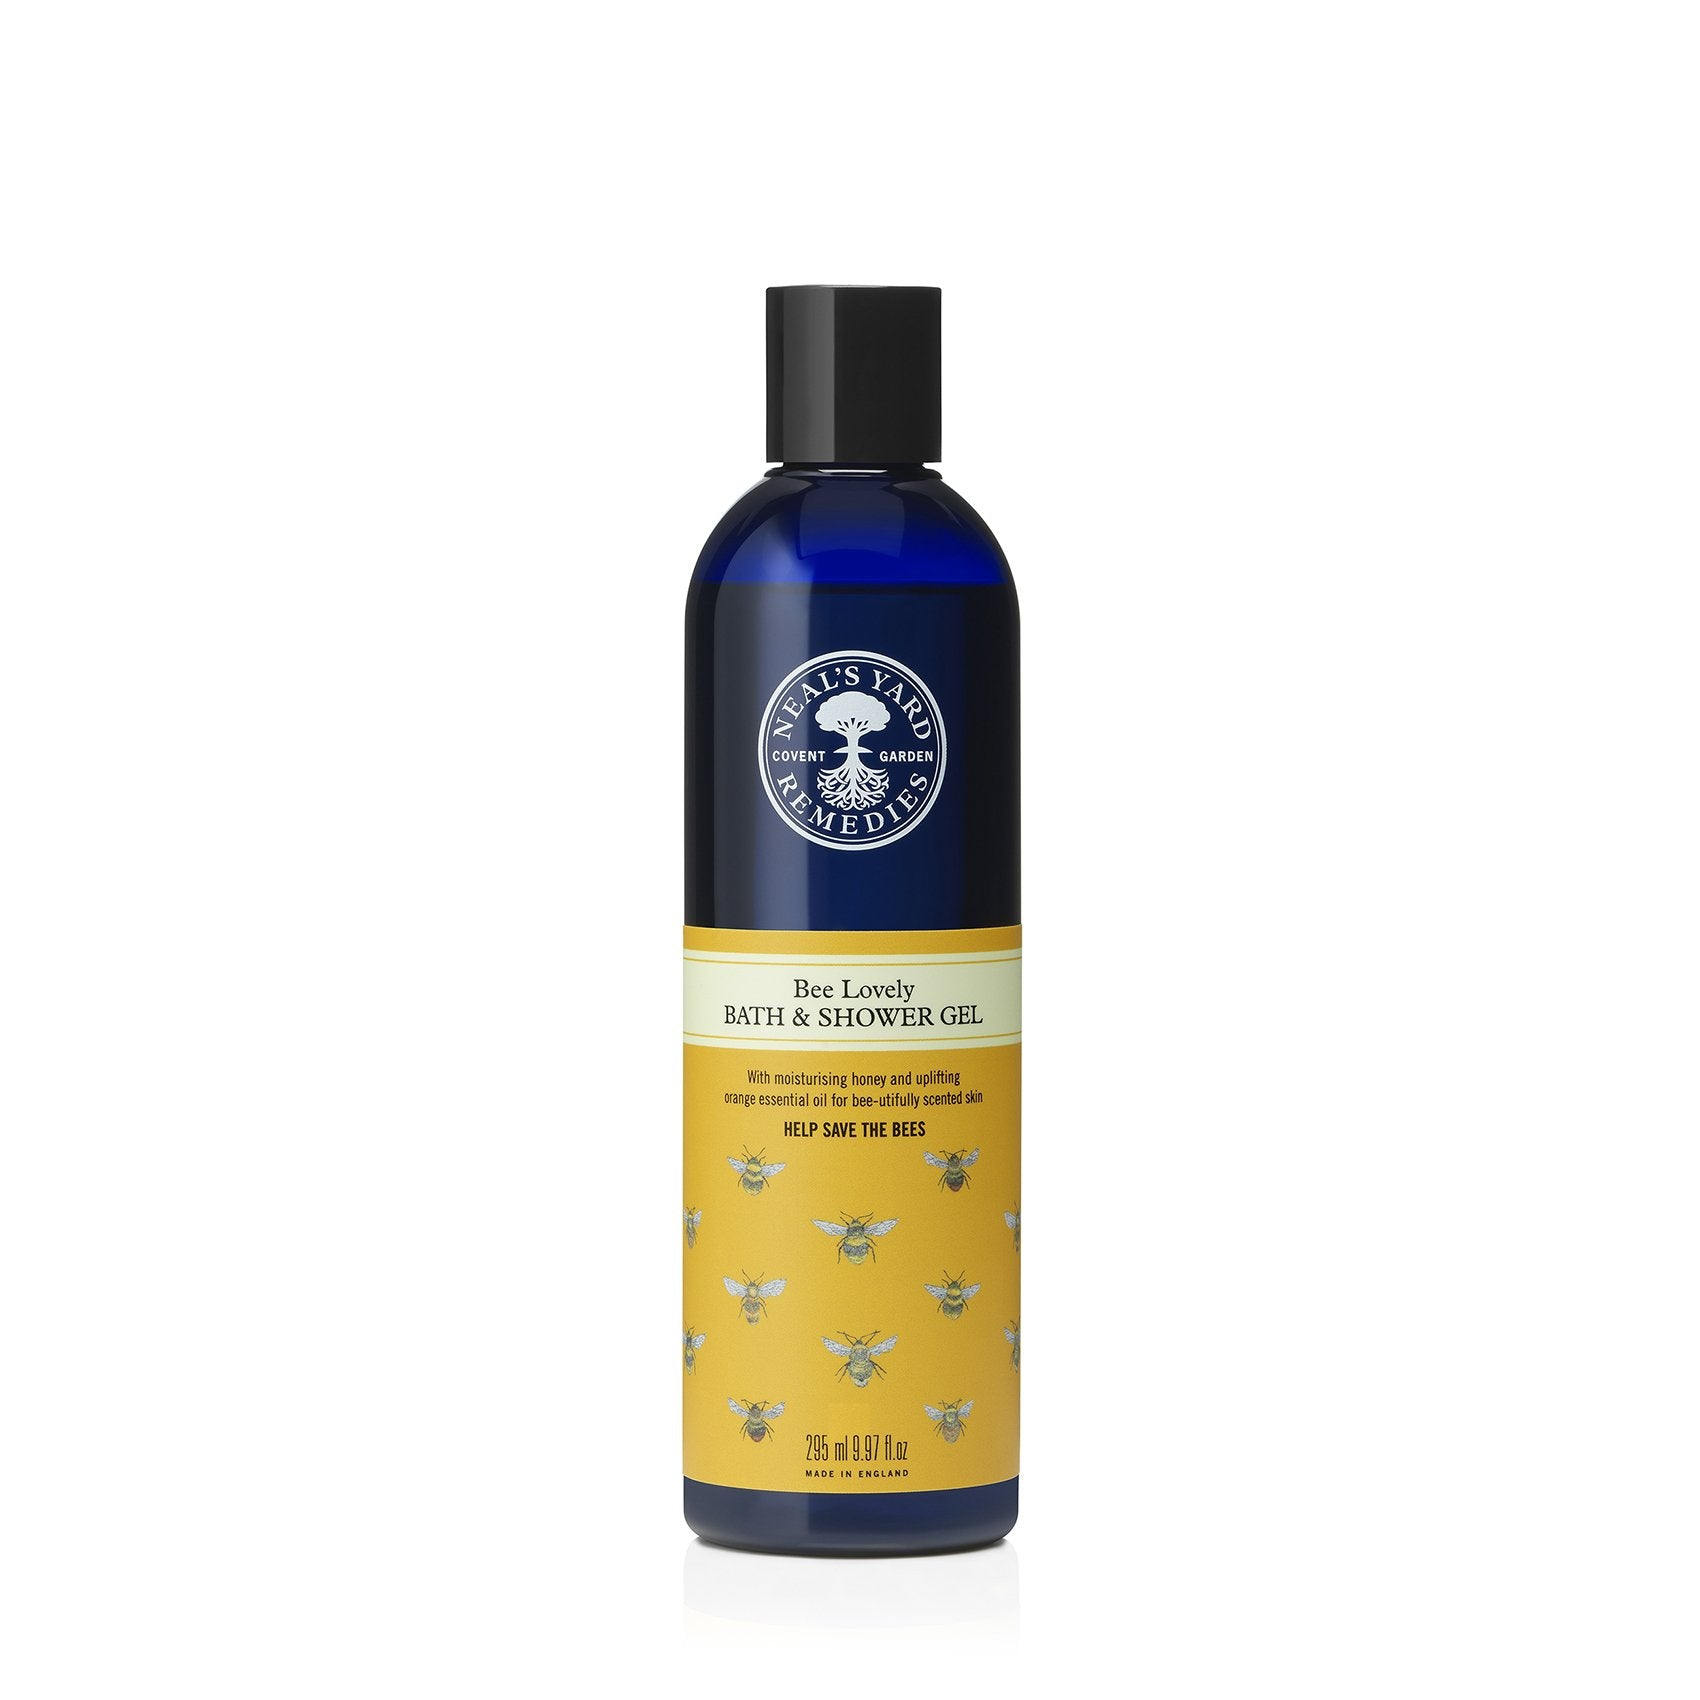 Bee Lovely Bath and Shower Gel